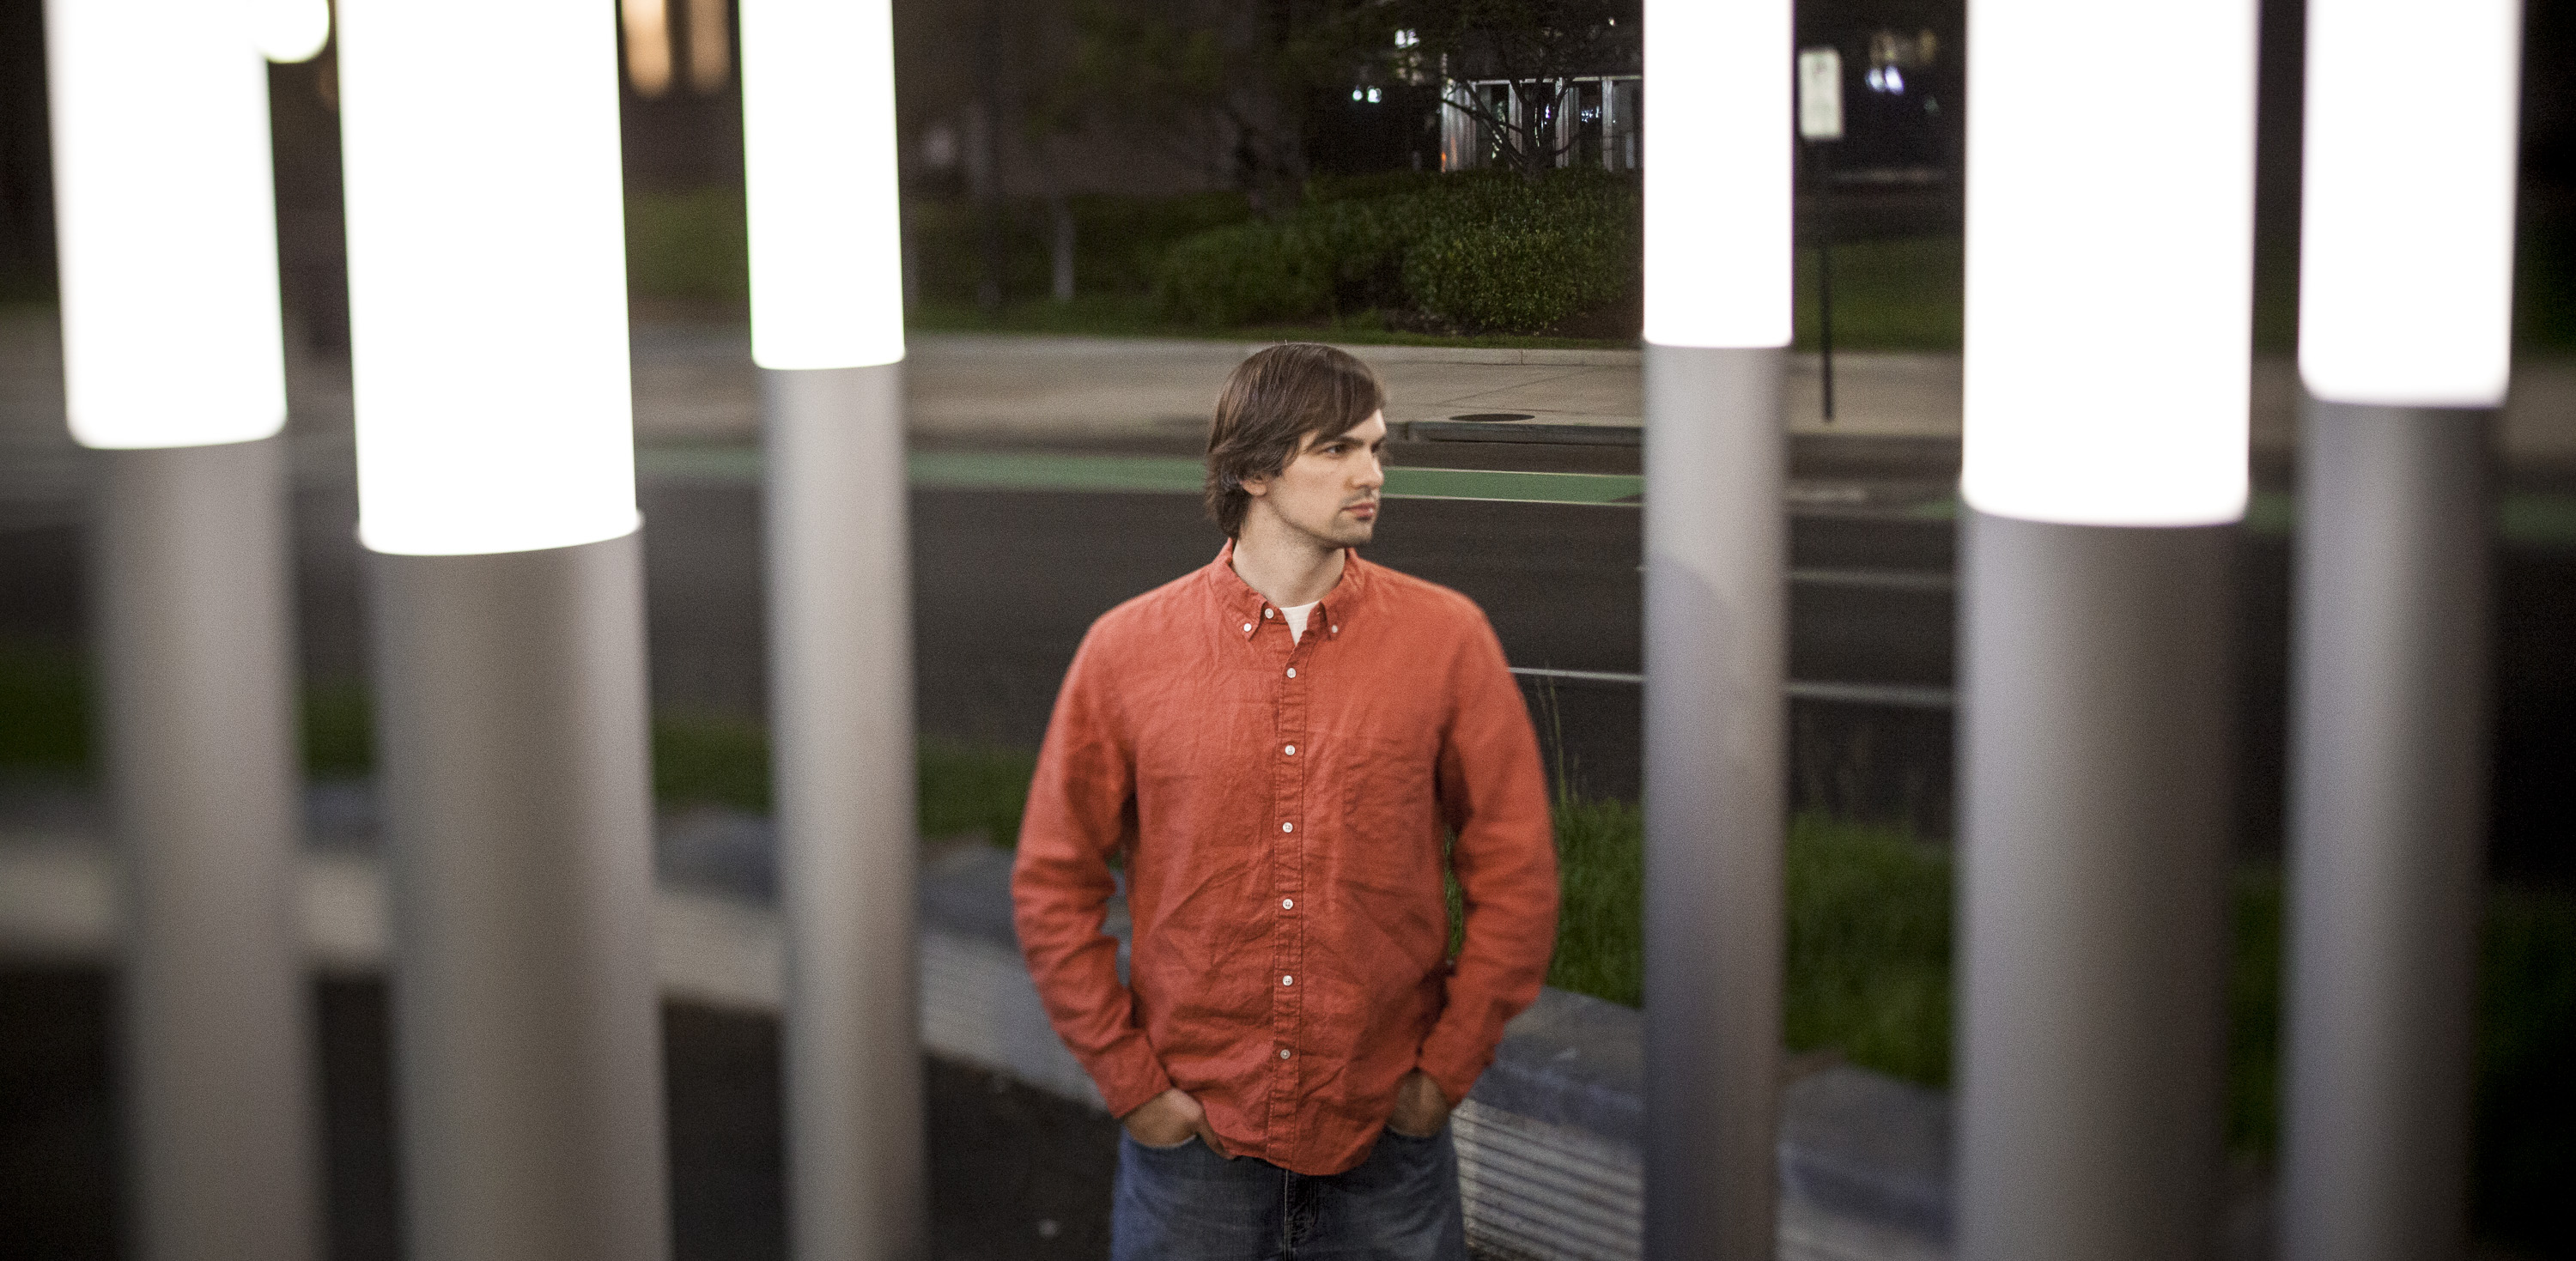 Portraits of Greg Wlosinski and Lindsay King in Pentagon City, Arlington, VA, May 18, 2014.